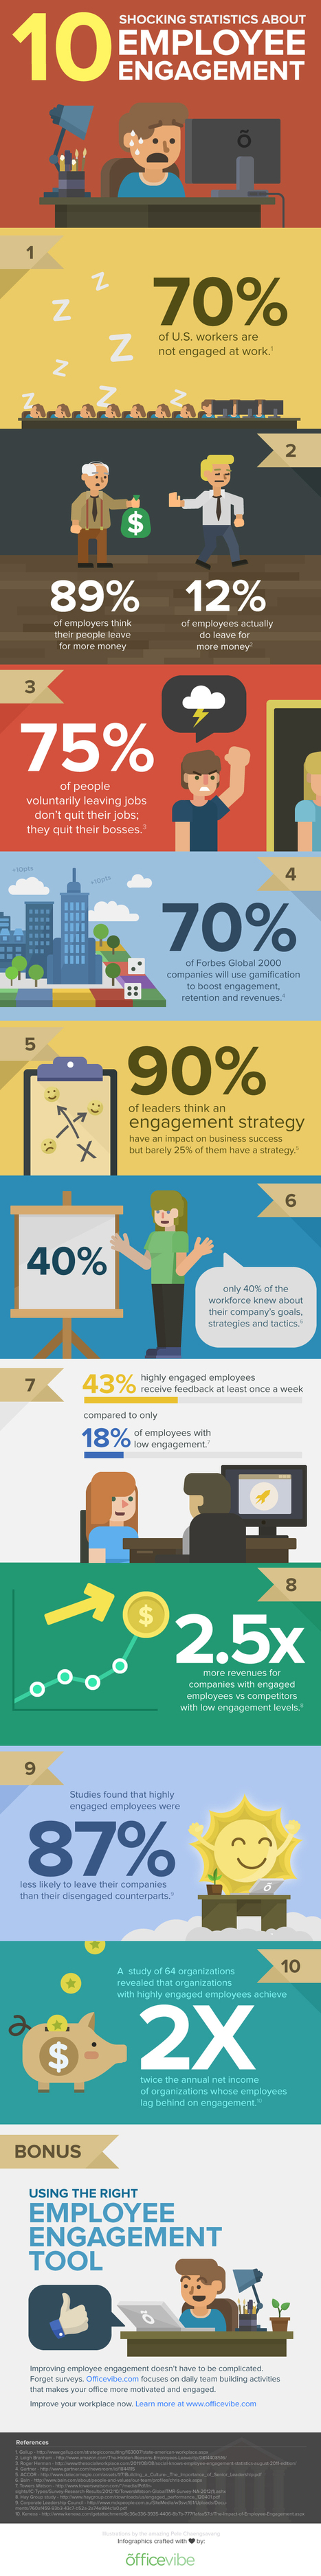 Employee Engagement Infographic  - Jaluch | Employee Engagement | Scoop.it